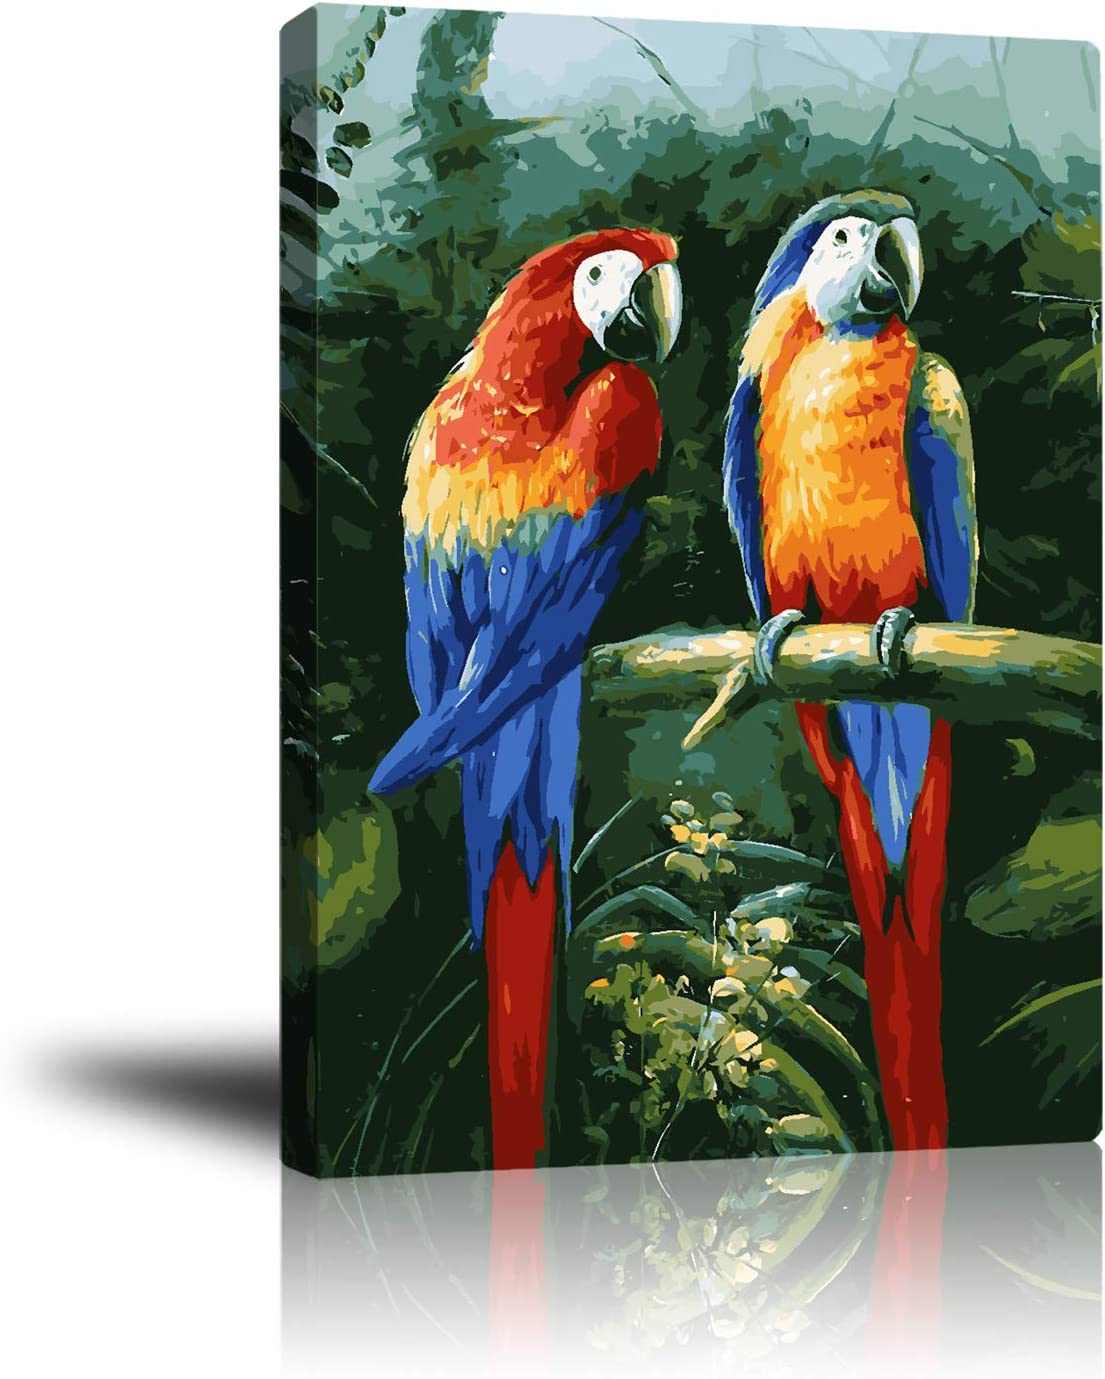 Unframed Canvas Wall Art, Birds Artwork Painting, Two Parrots in The Rainforest Pictures for Livingroom Bedroom Office Home Decorations, Ready to Hang 16x20inch